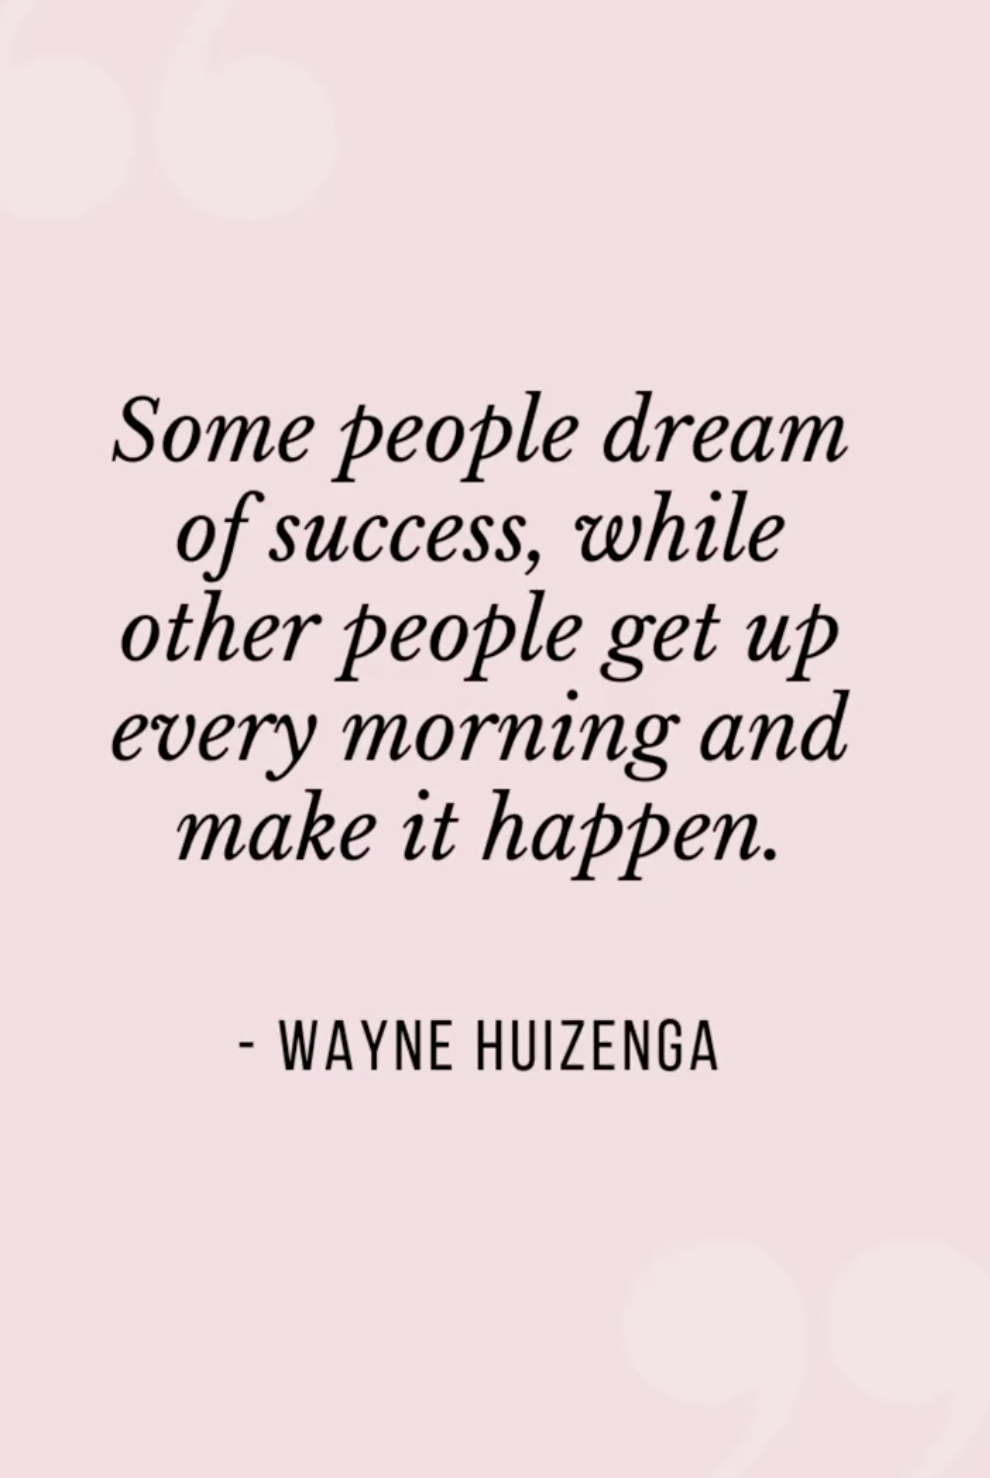 Inspirational Quotes Positive for Women Dream Success Motivation for Life Wayne Huizenga